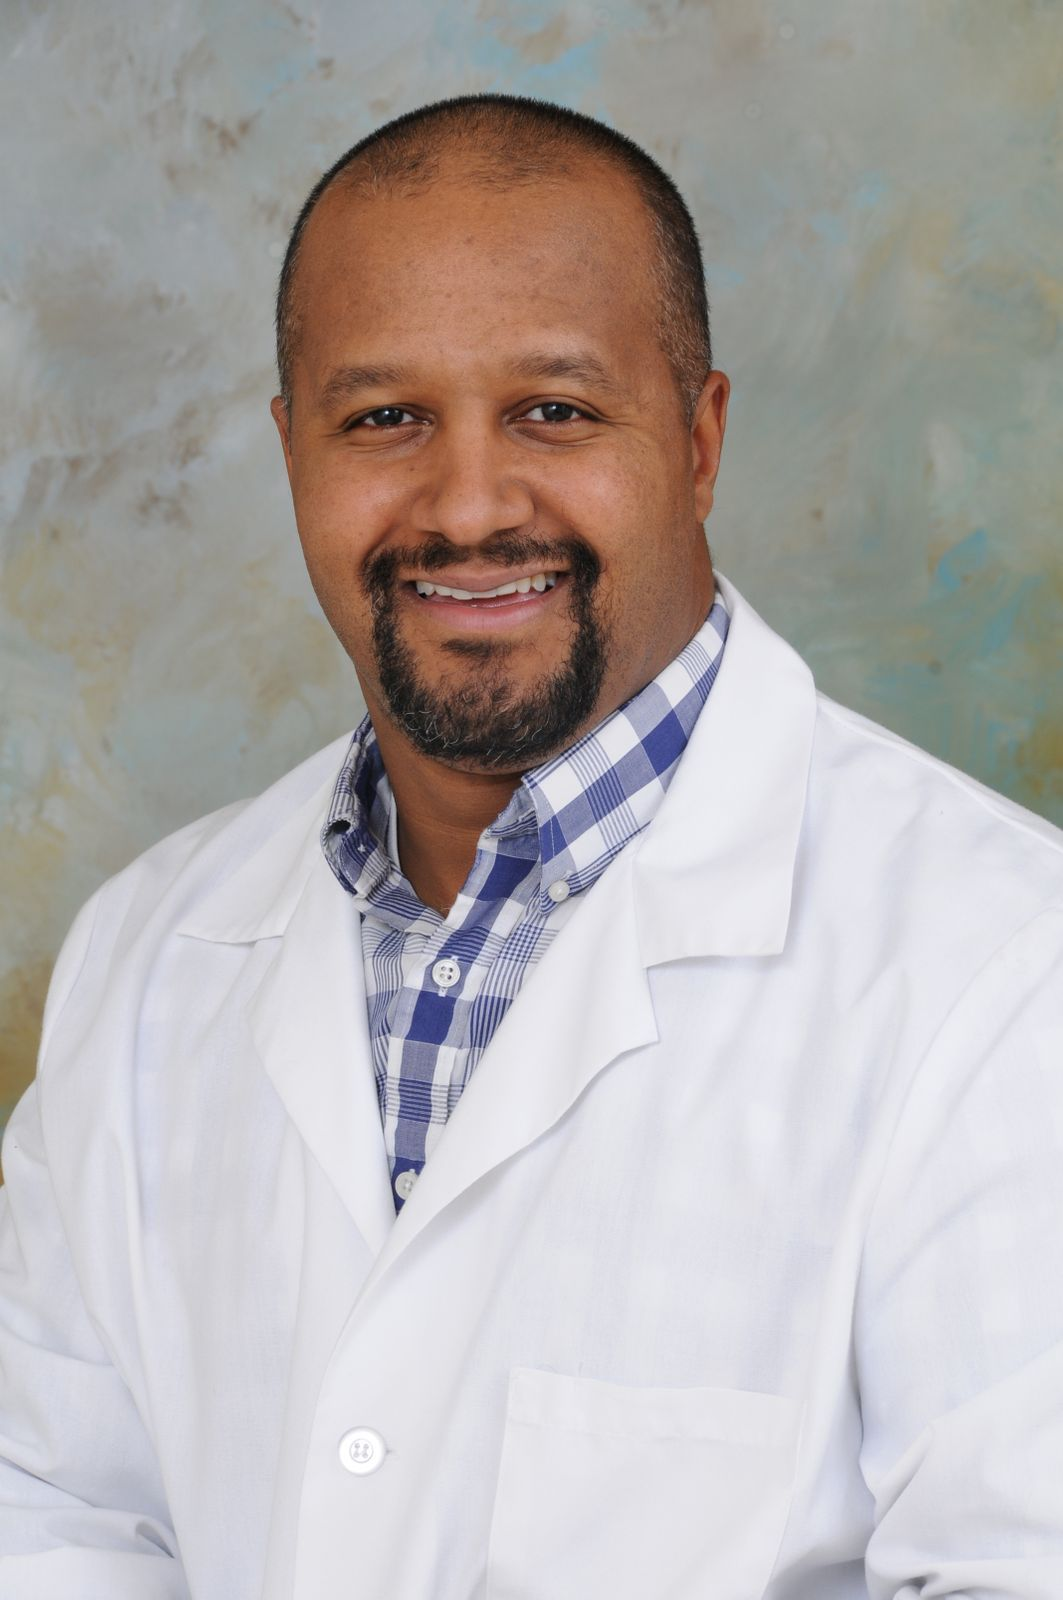 Brian C Hunter, MD